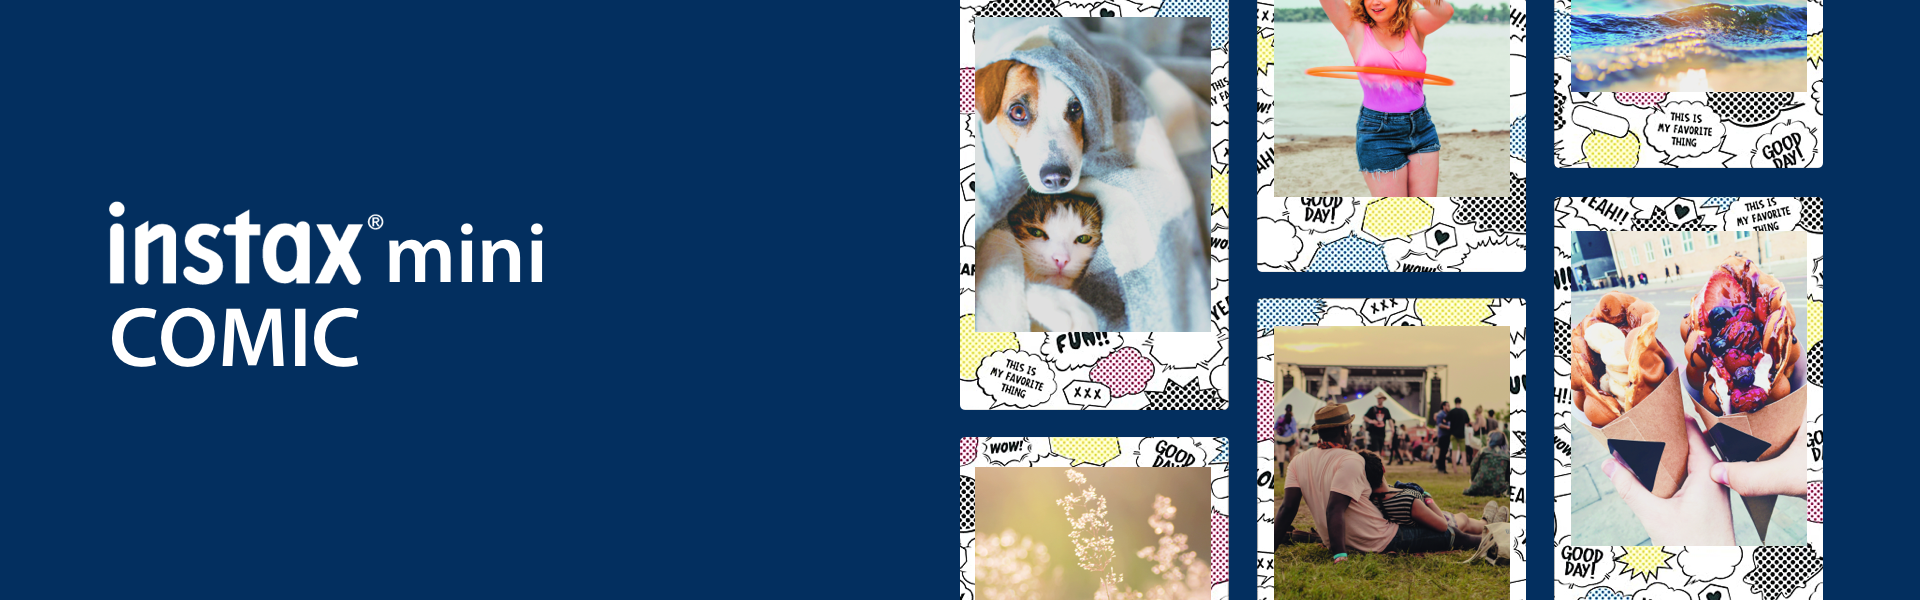 """[photo] A grid of 6 photos of different friends on a blue background and """"instax mini comic"""" text in white"""